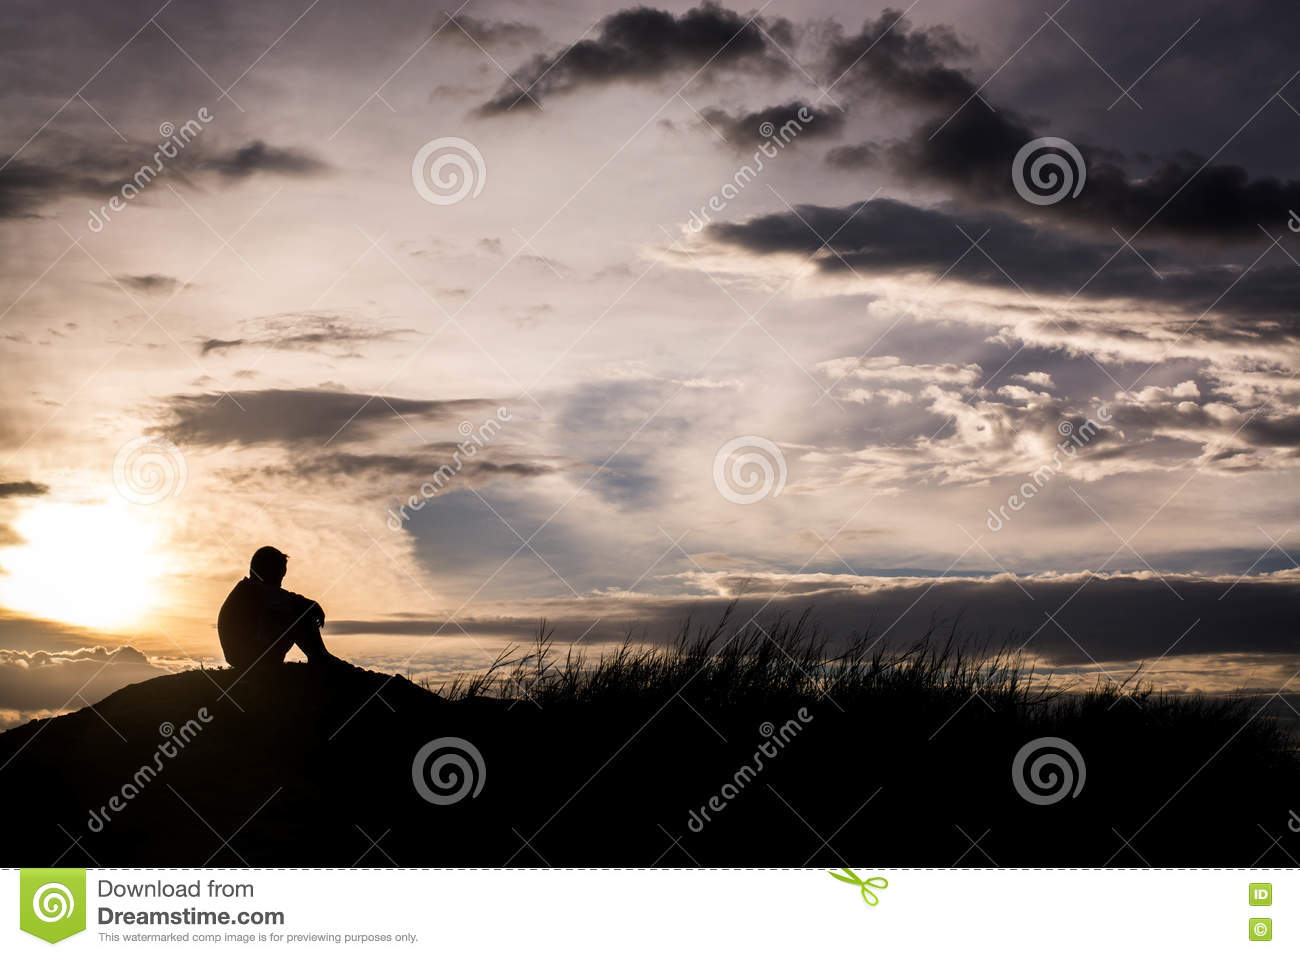 Sad boy silhouette worried on the meadow at sunset silhouette c oncept stock photography